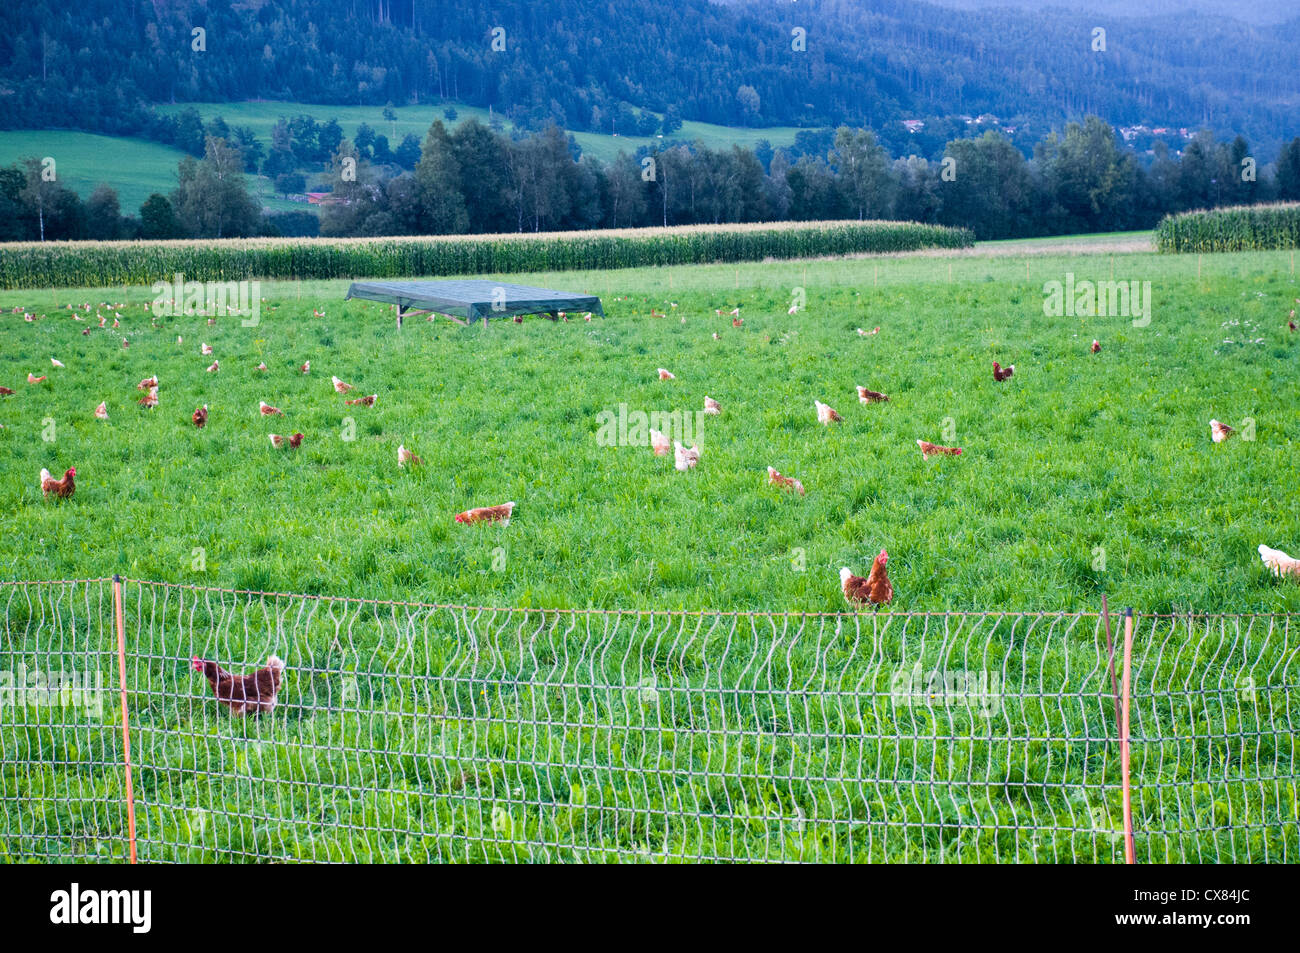 Flock of domestic Free-range chickens (Gallus sp.) feeding in a farm yard Photographed in Tyrol Austria - Stock Image